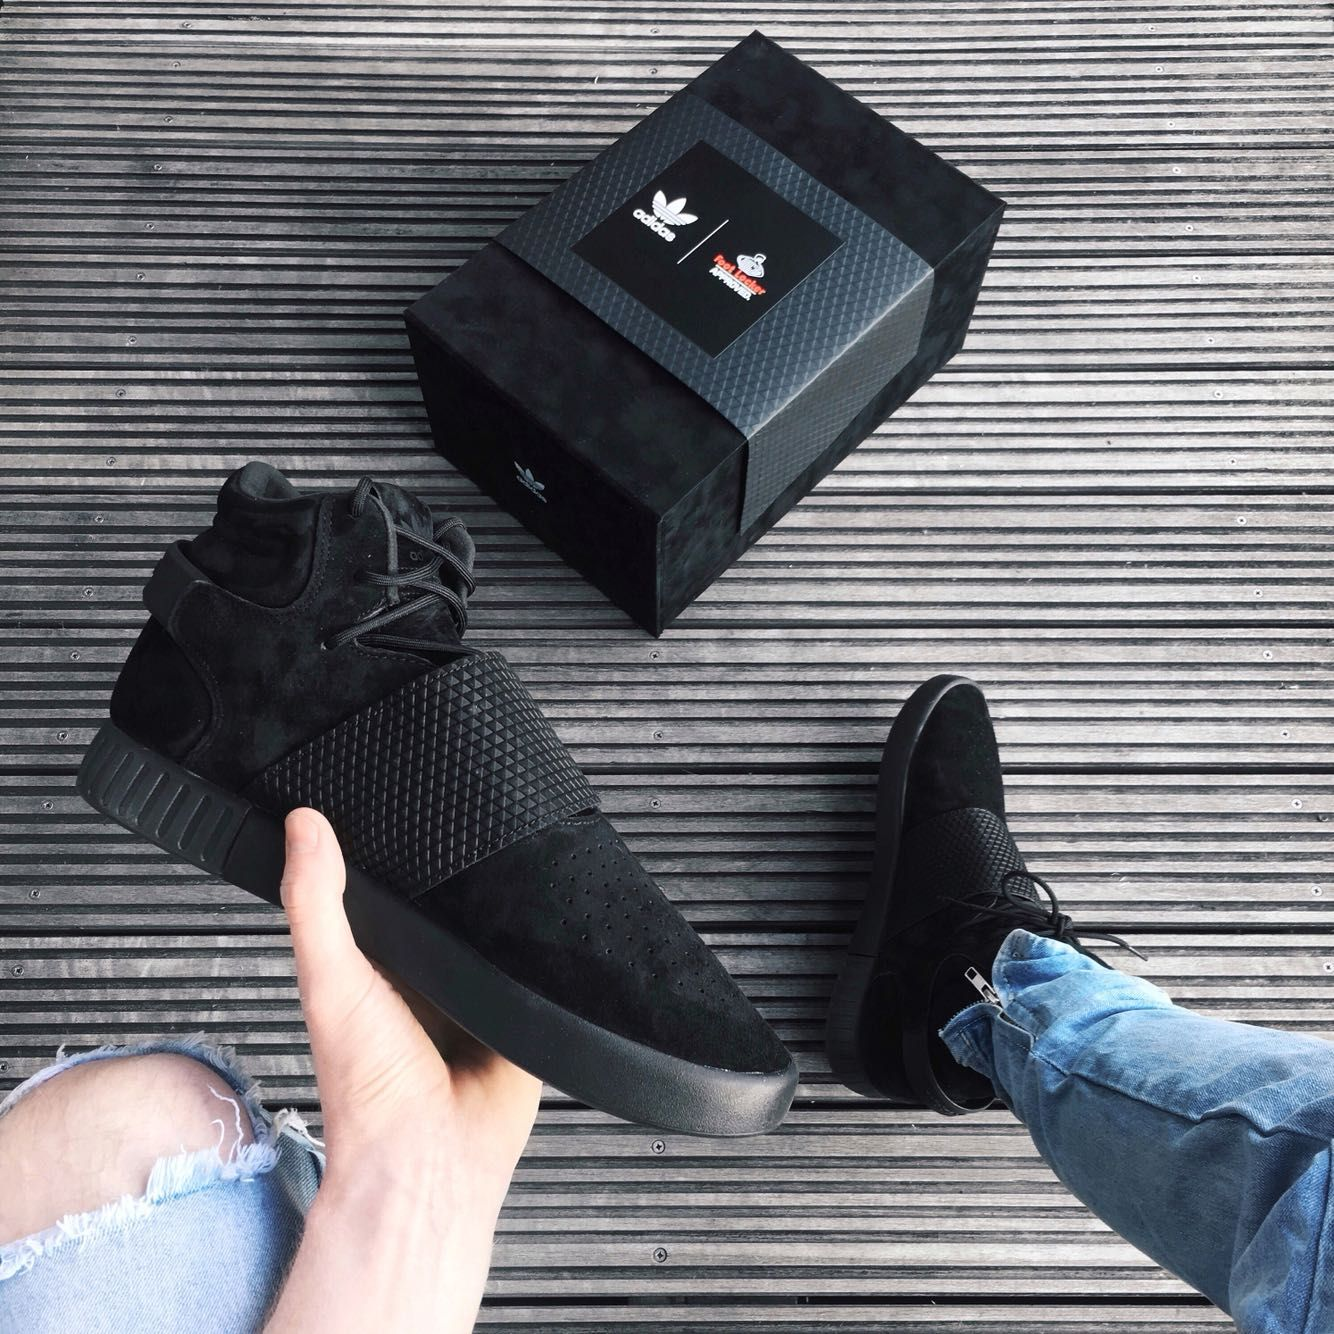 Imgur The Most Awesome Images On The Internet Adidas Fashion Adidas Tubular Invader Strap Adidas Boots